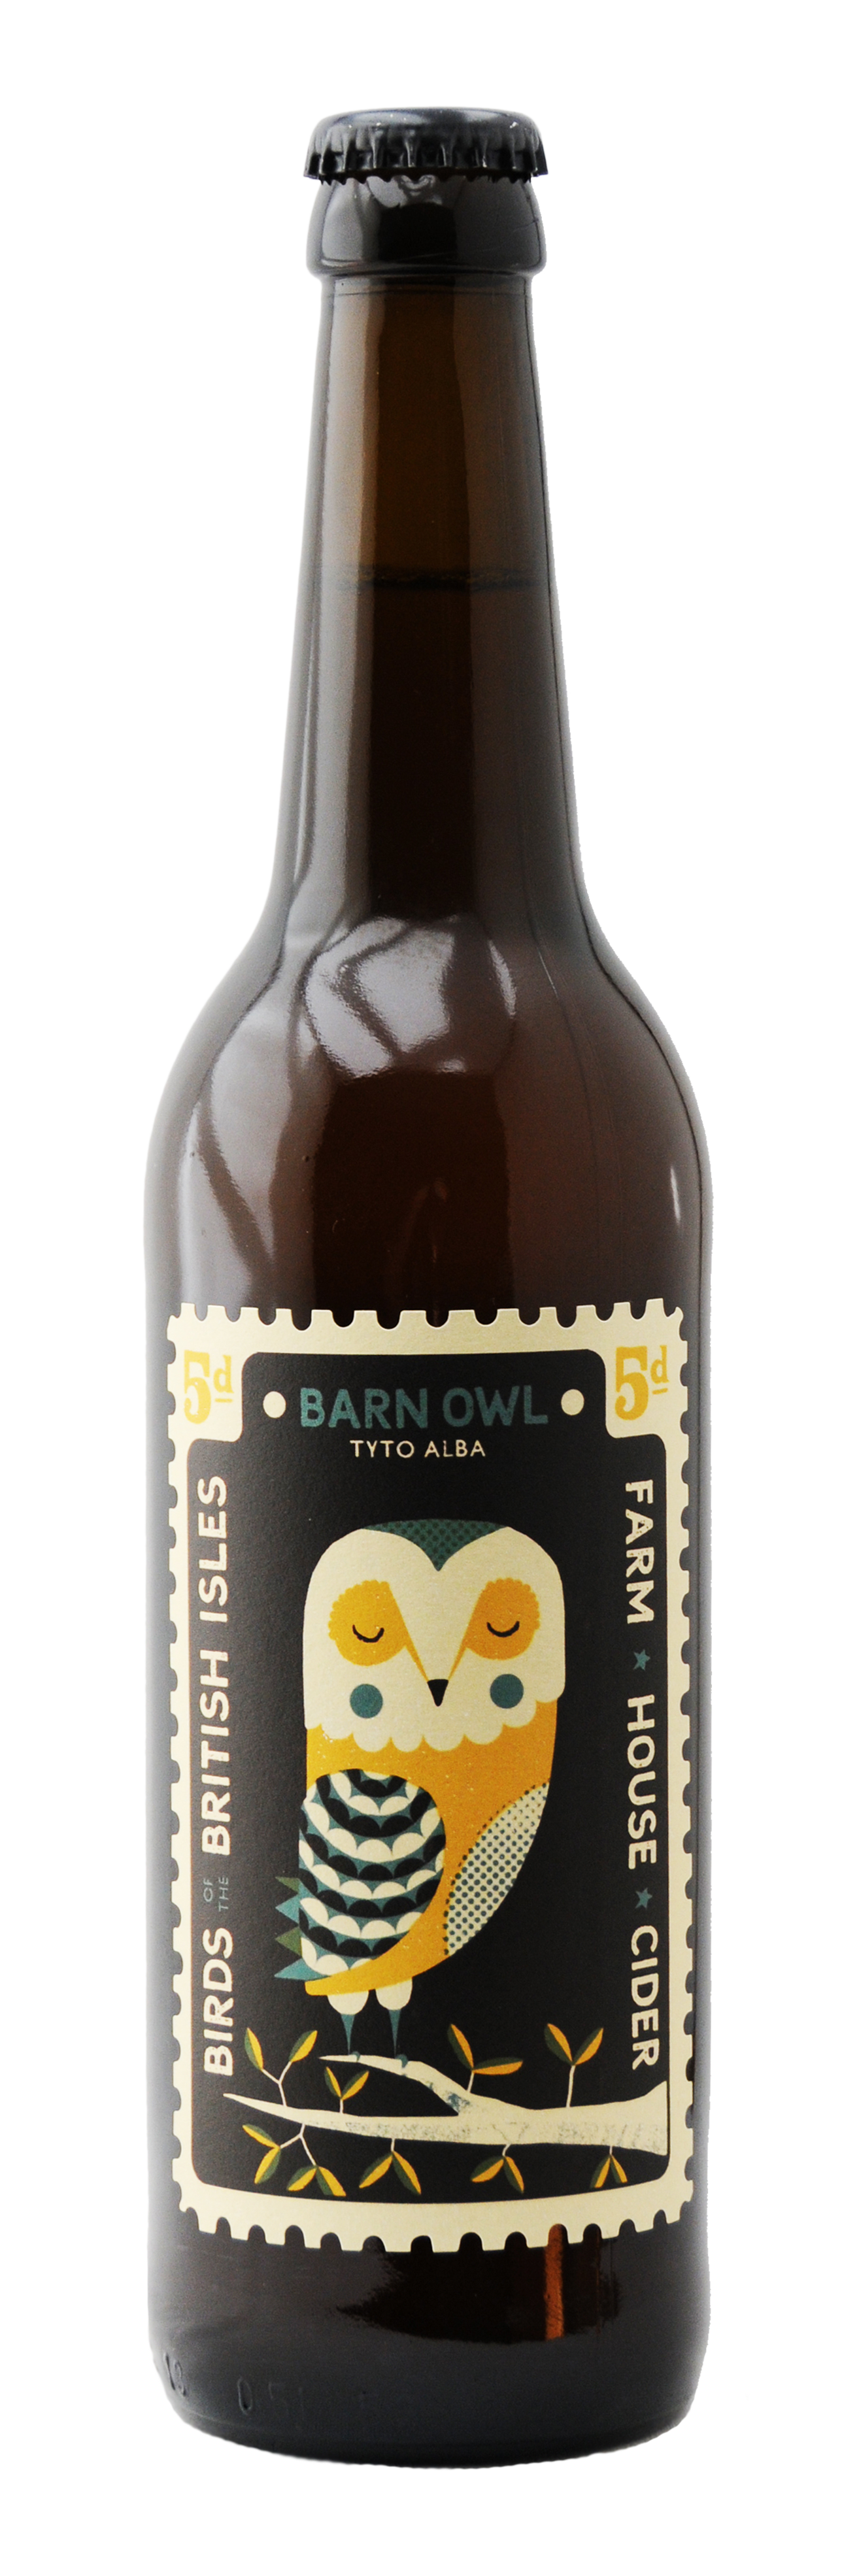 Barn Owl Bottle